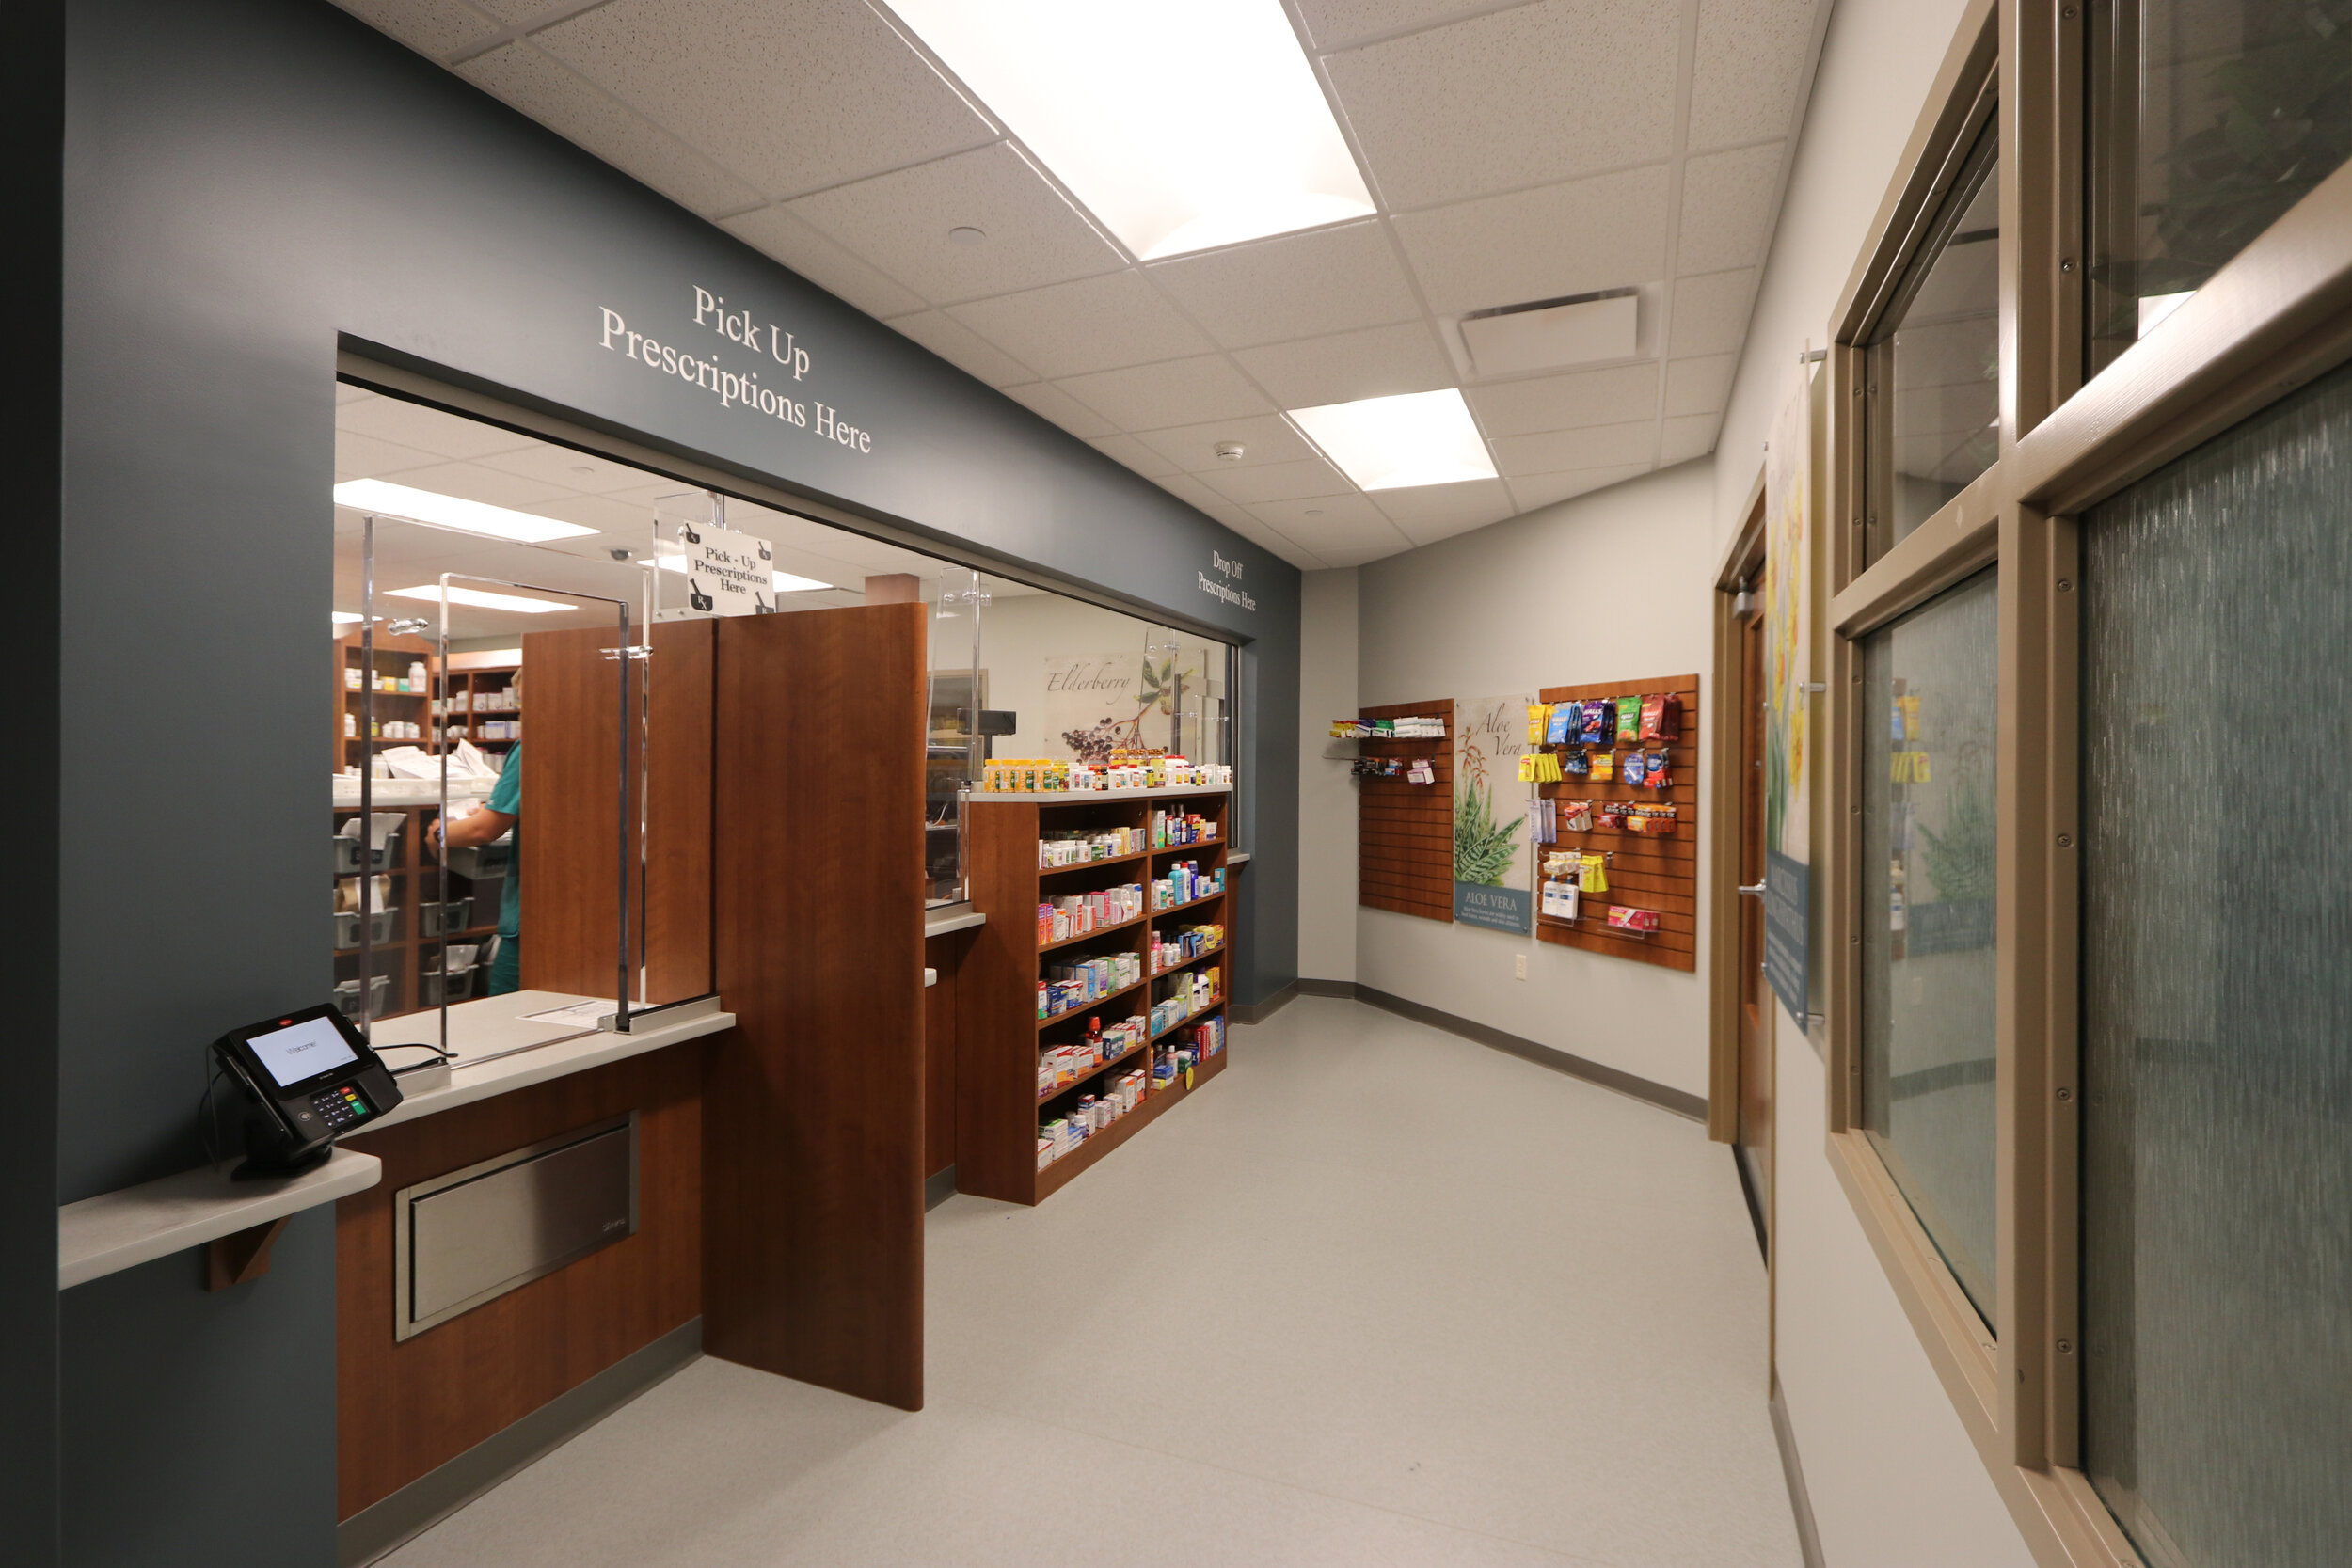 EGH Outpatient Pharmacy View 1.jpg